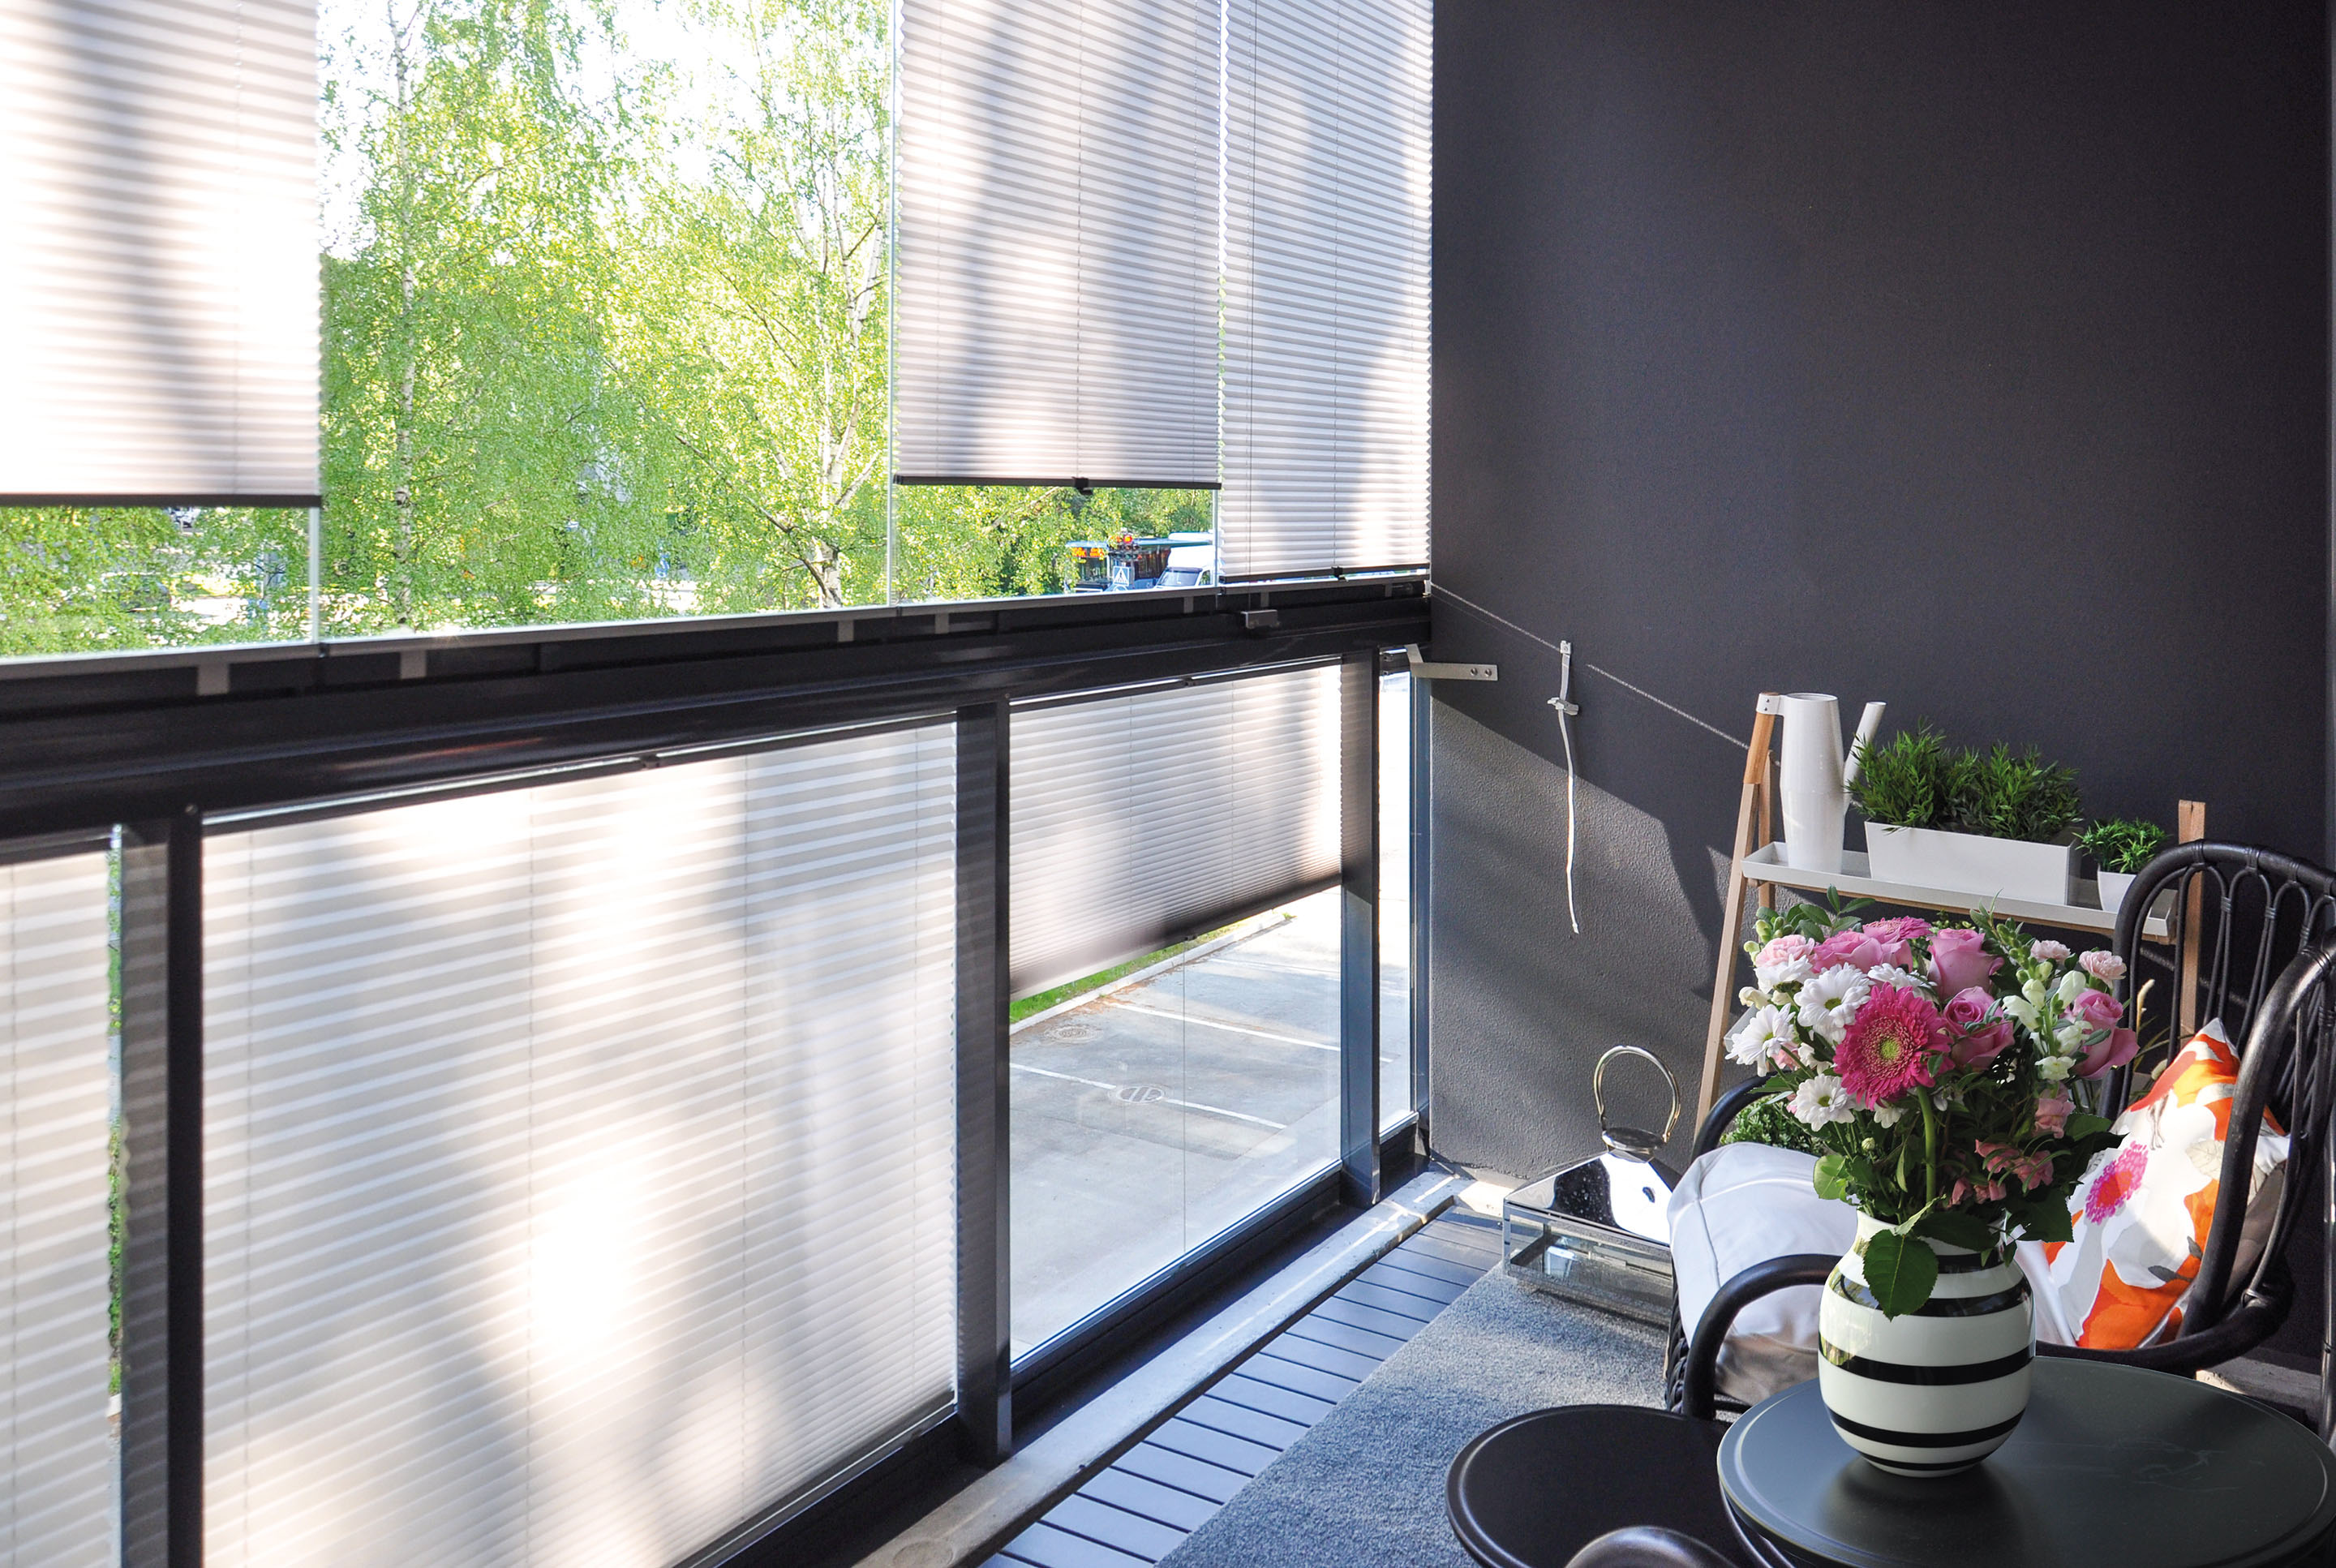 railing blinds, balcony blinds, balcony railing blinds